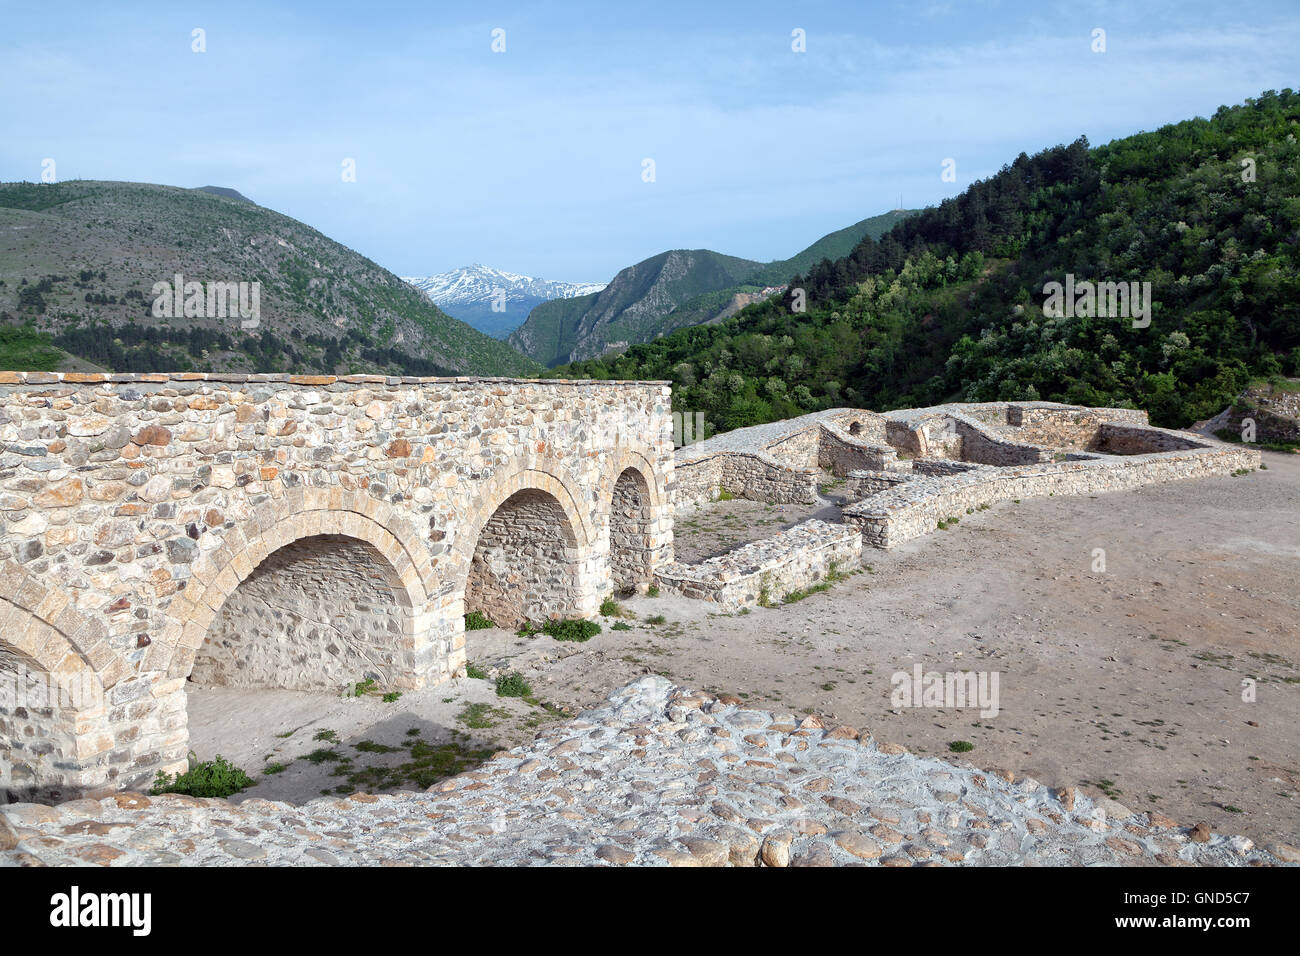 Walls of Prizren castle, Kosovo - Stock Image